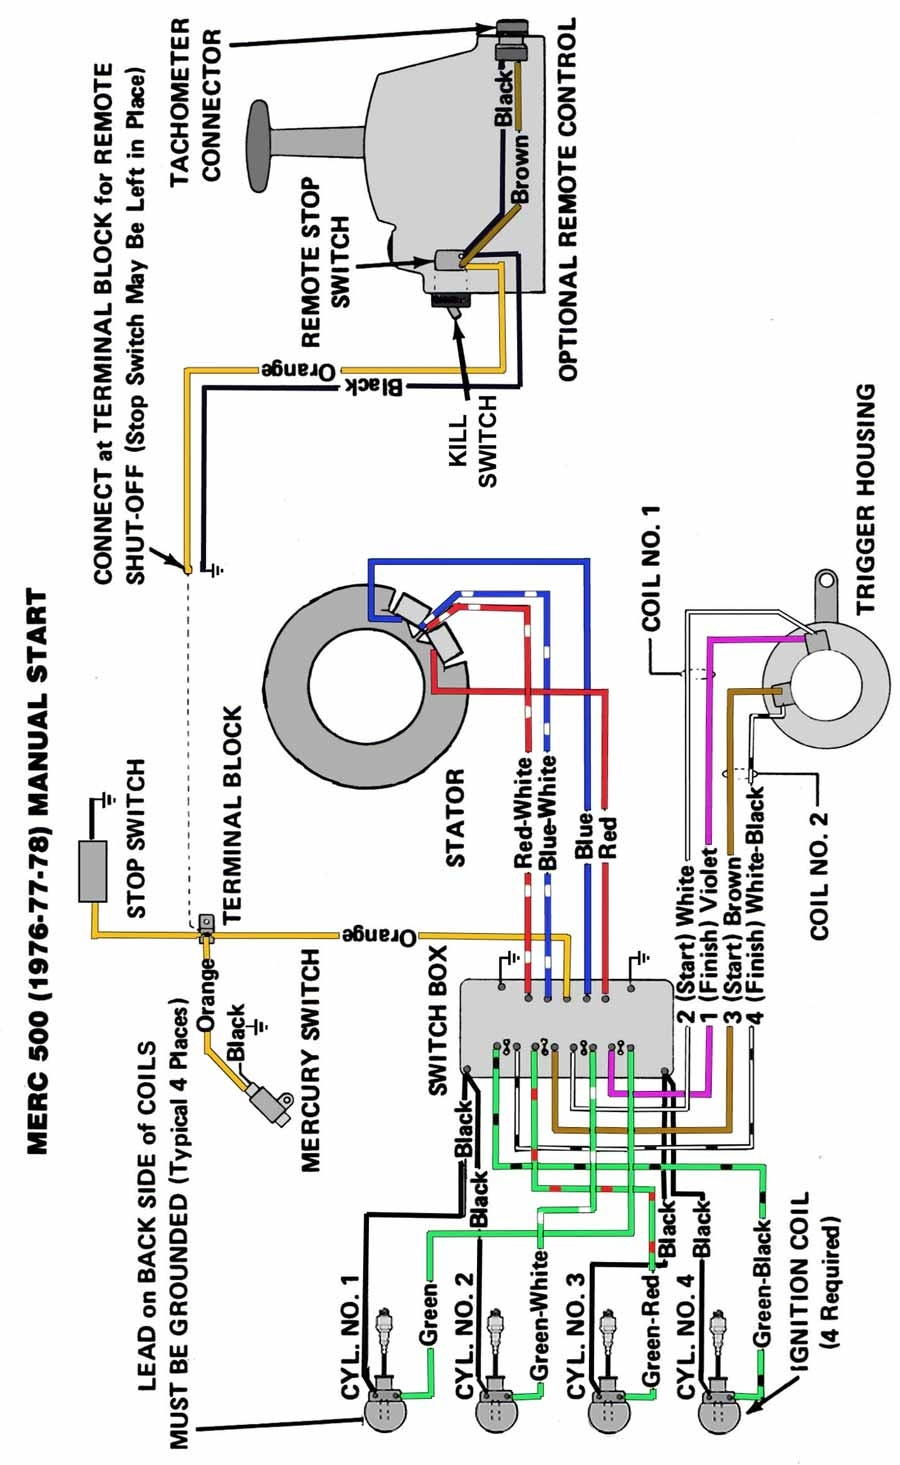 mercury outboard wiring diagrams mastertech marin intended for 76 evinrude wiring diagram?resize\\\\\\\\\\\\\\\=665%2C1082\\\\\\\\\\\\\\\&ssl\\\\\\\\\\\\\\\=1 mercury outboard ignition switch diagram color coded wiring Boat Ignition Switch Wiring Diagram at readyjetset.co